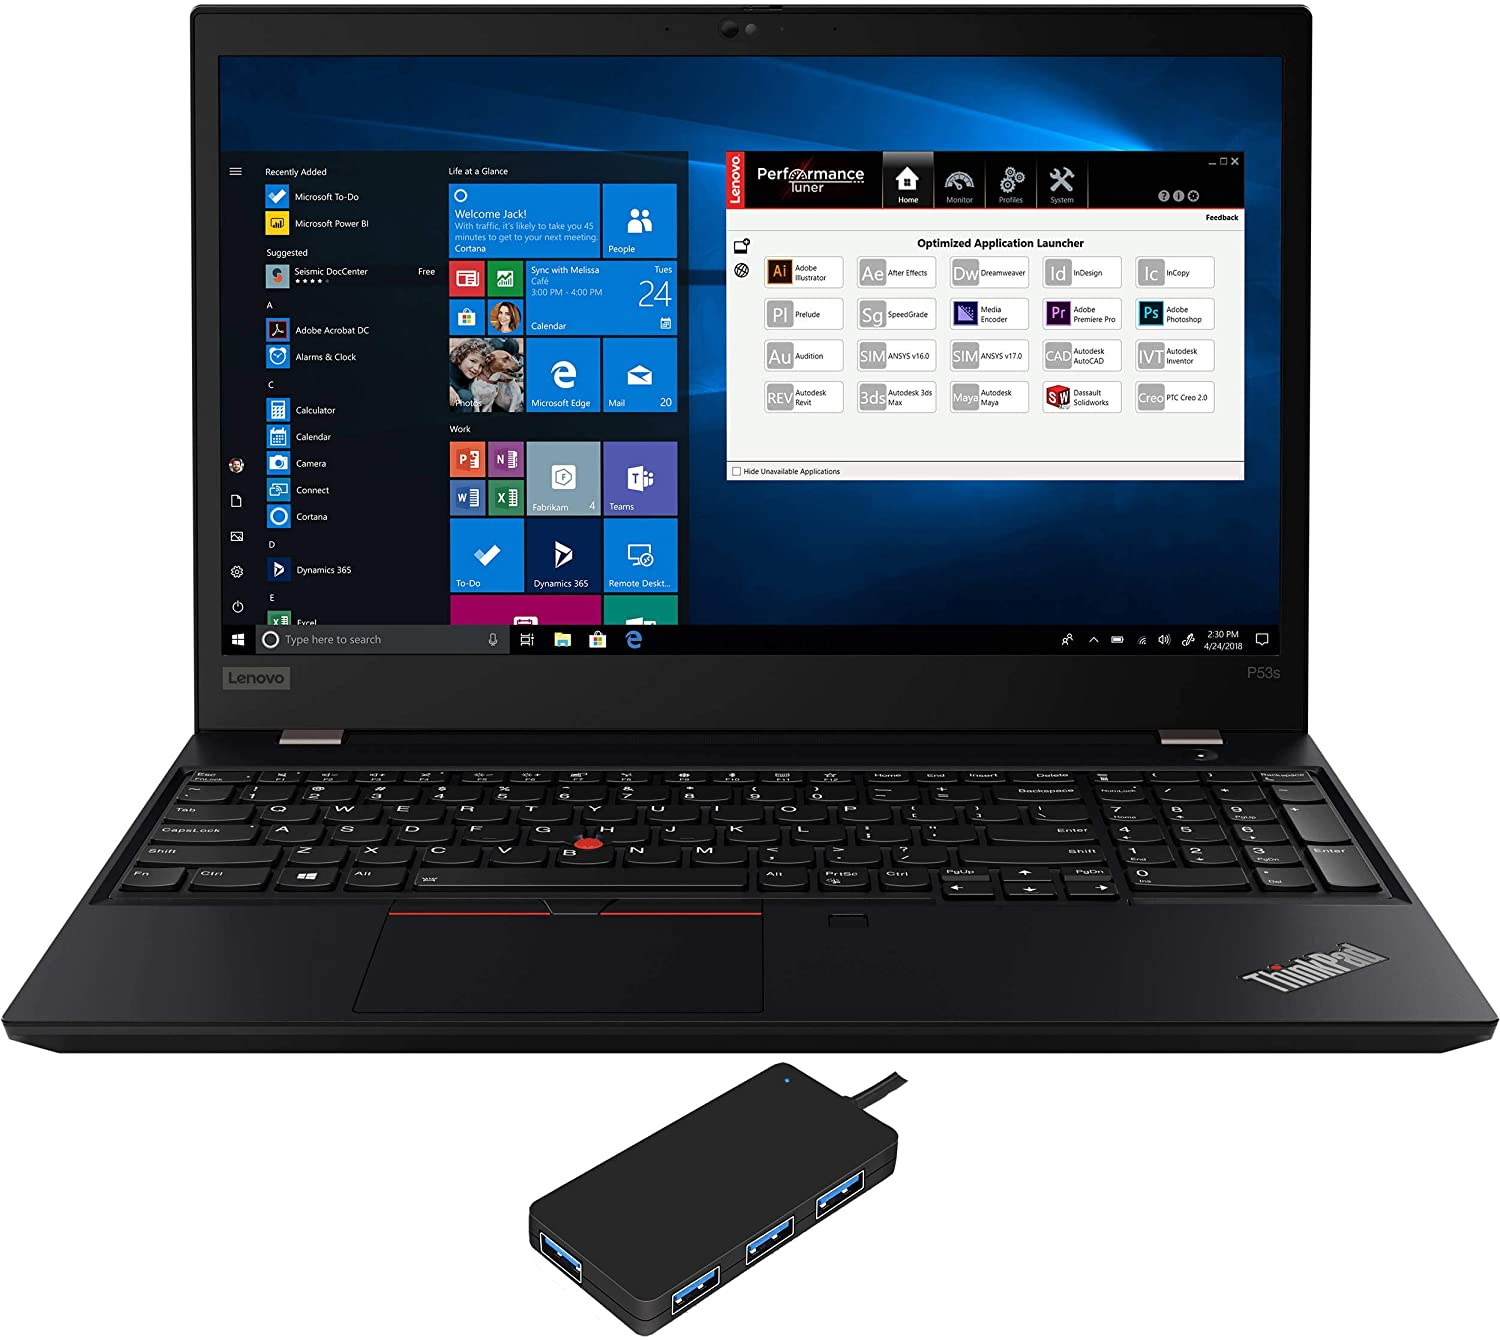 Lenovo ThinkPad P53s Workstation Laptop (Intel i7-8565U 4-Core, 16GB RAM, 512GB m.2 SATA SSD, Quadro P520, 15.6